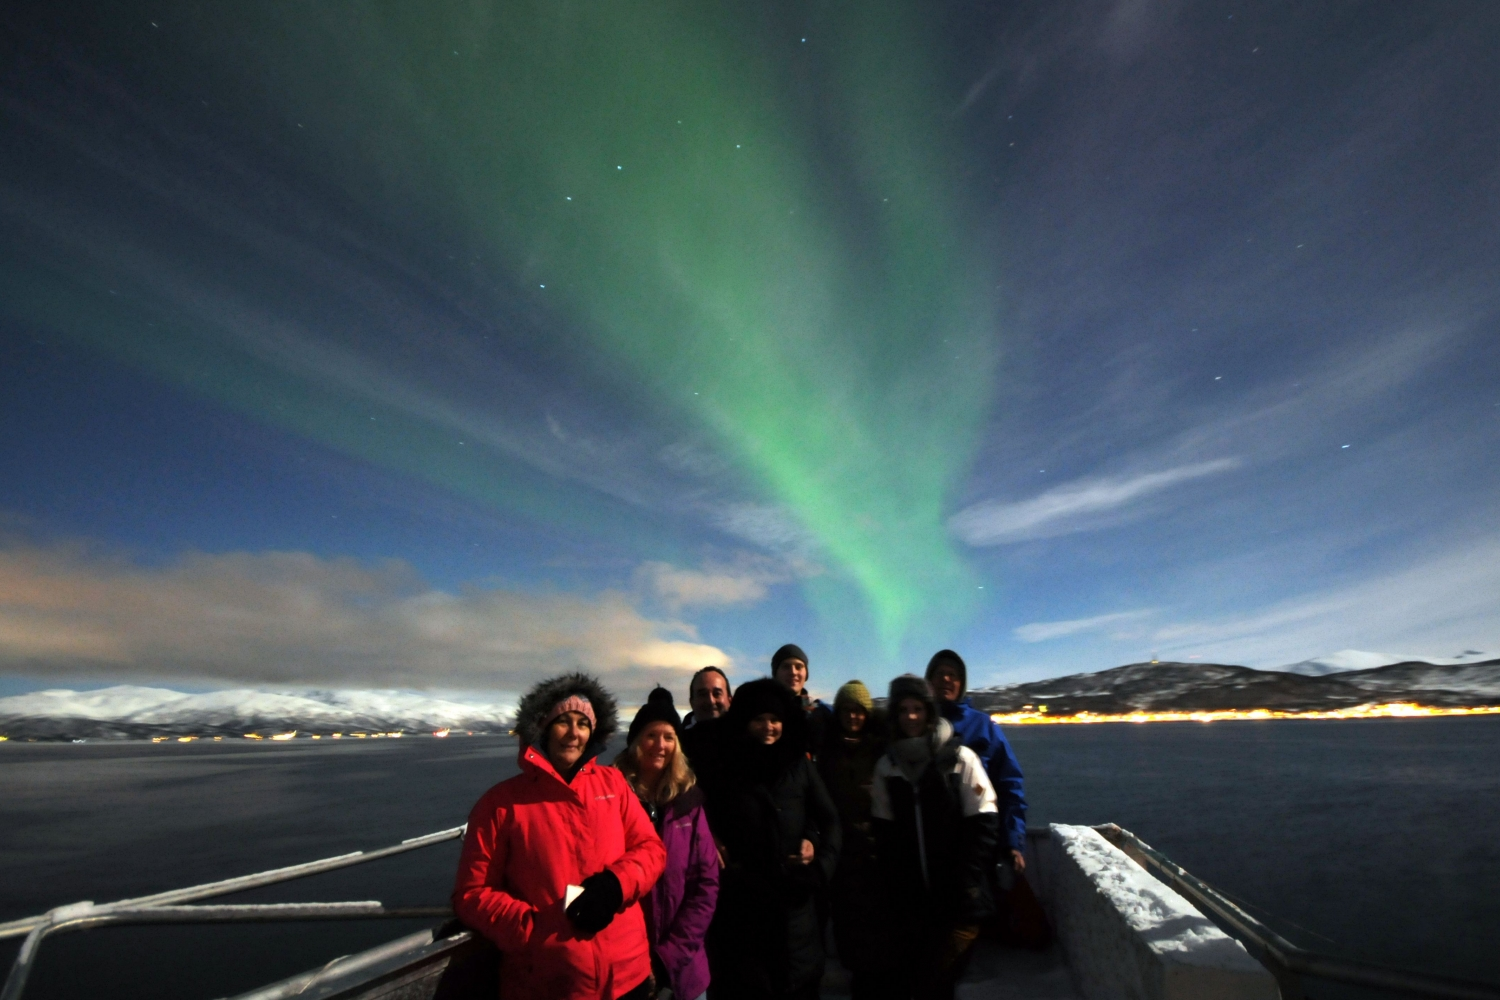 Guests on deck with Northern Lights in the background